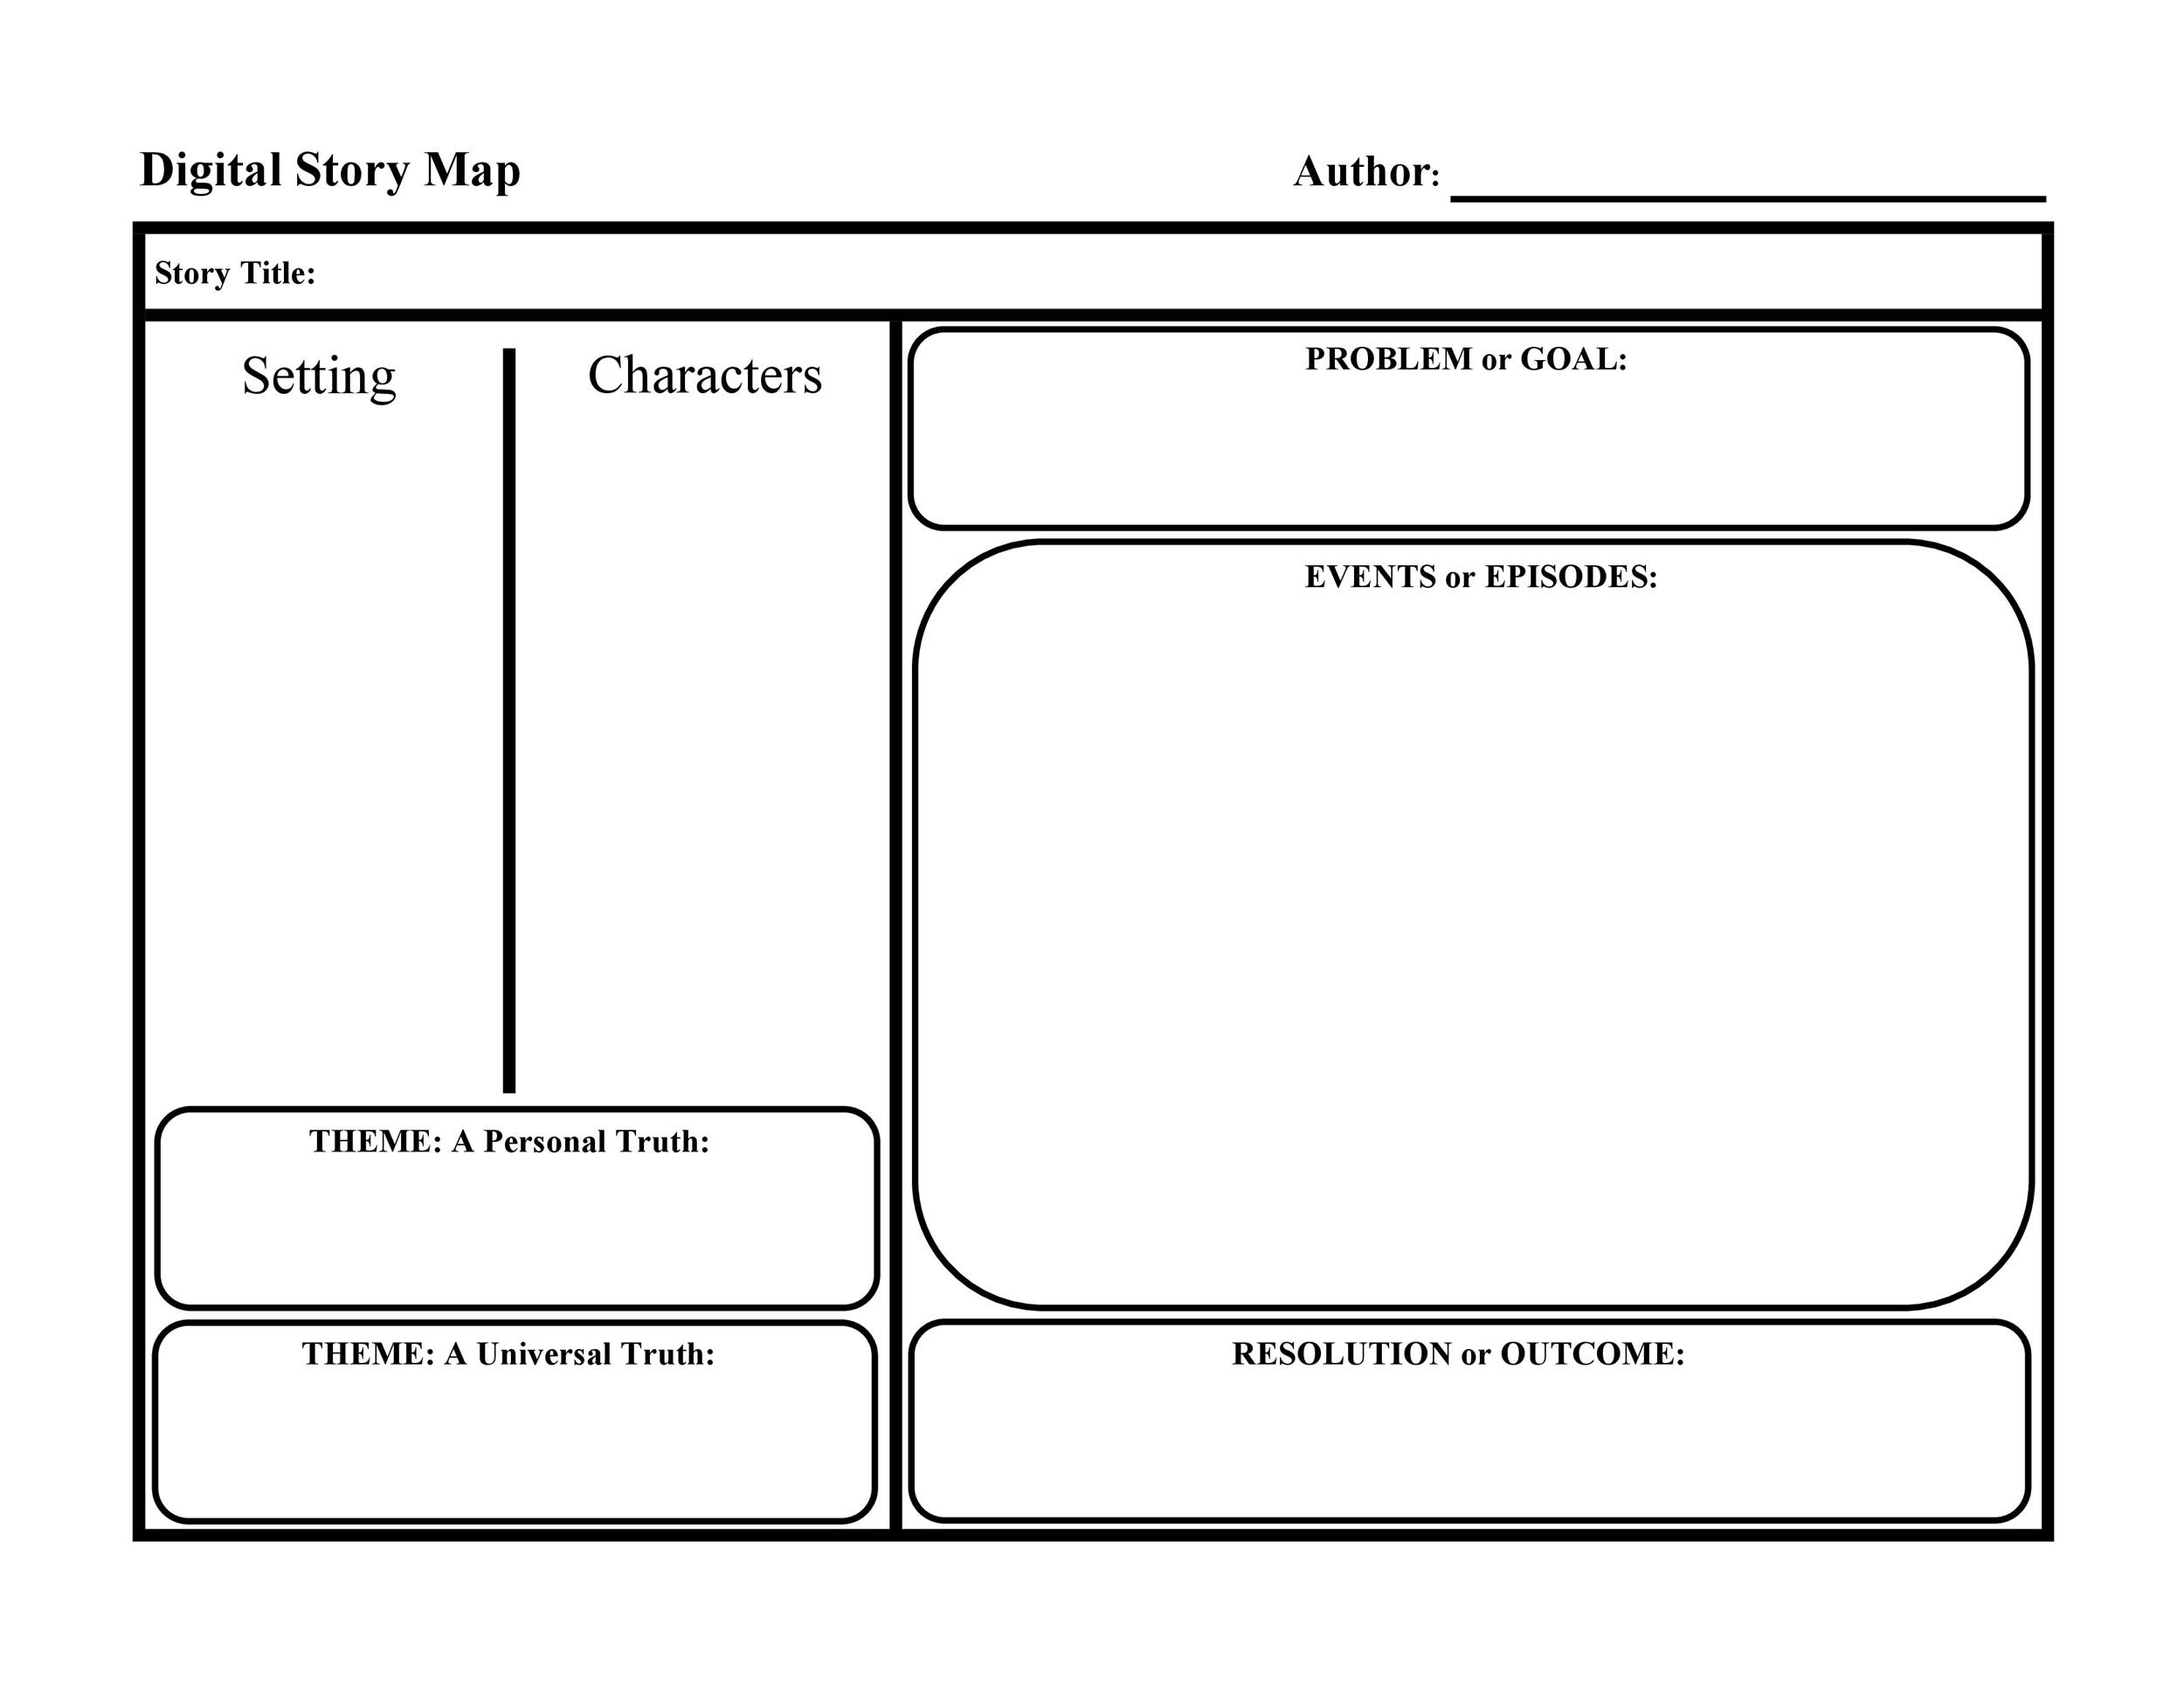 image regarding Free Printable Story Map named 41 Totally free Printable Tale Map Templates [PDF / Term] ᐅ